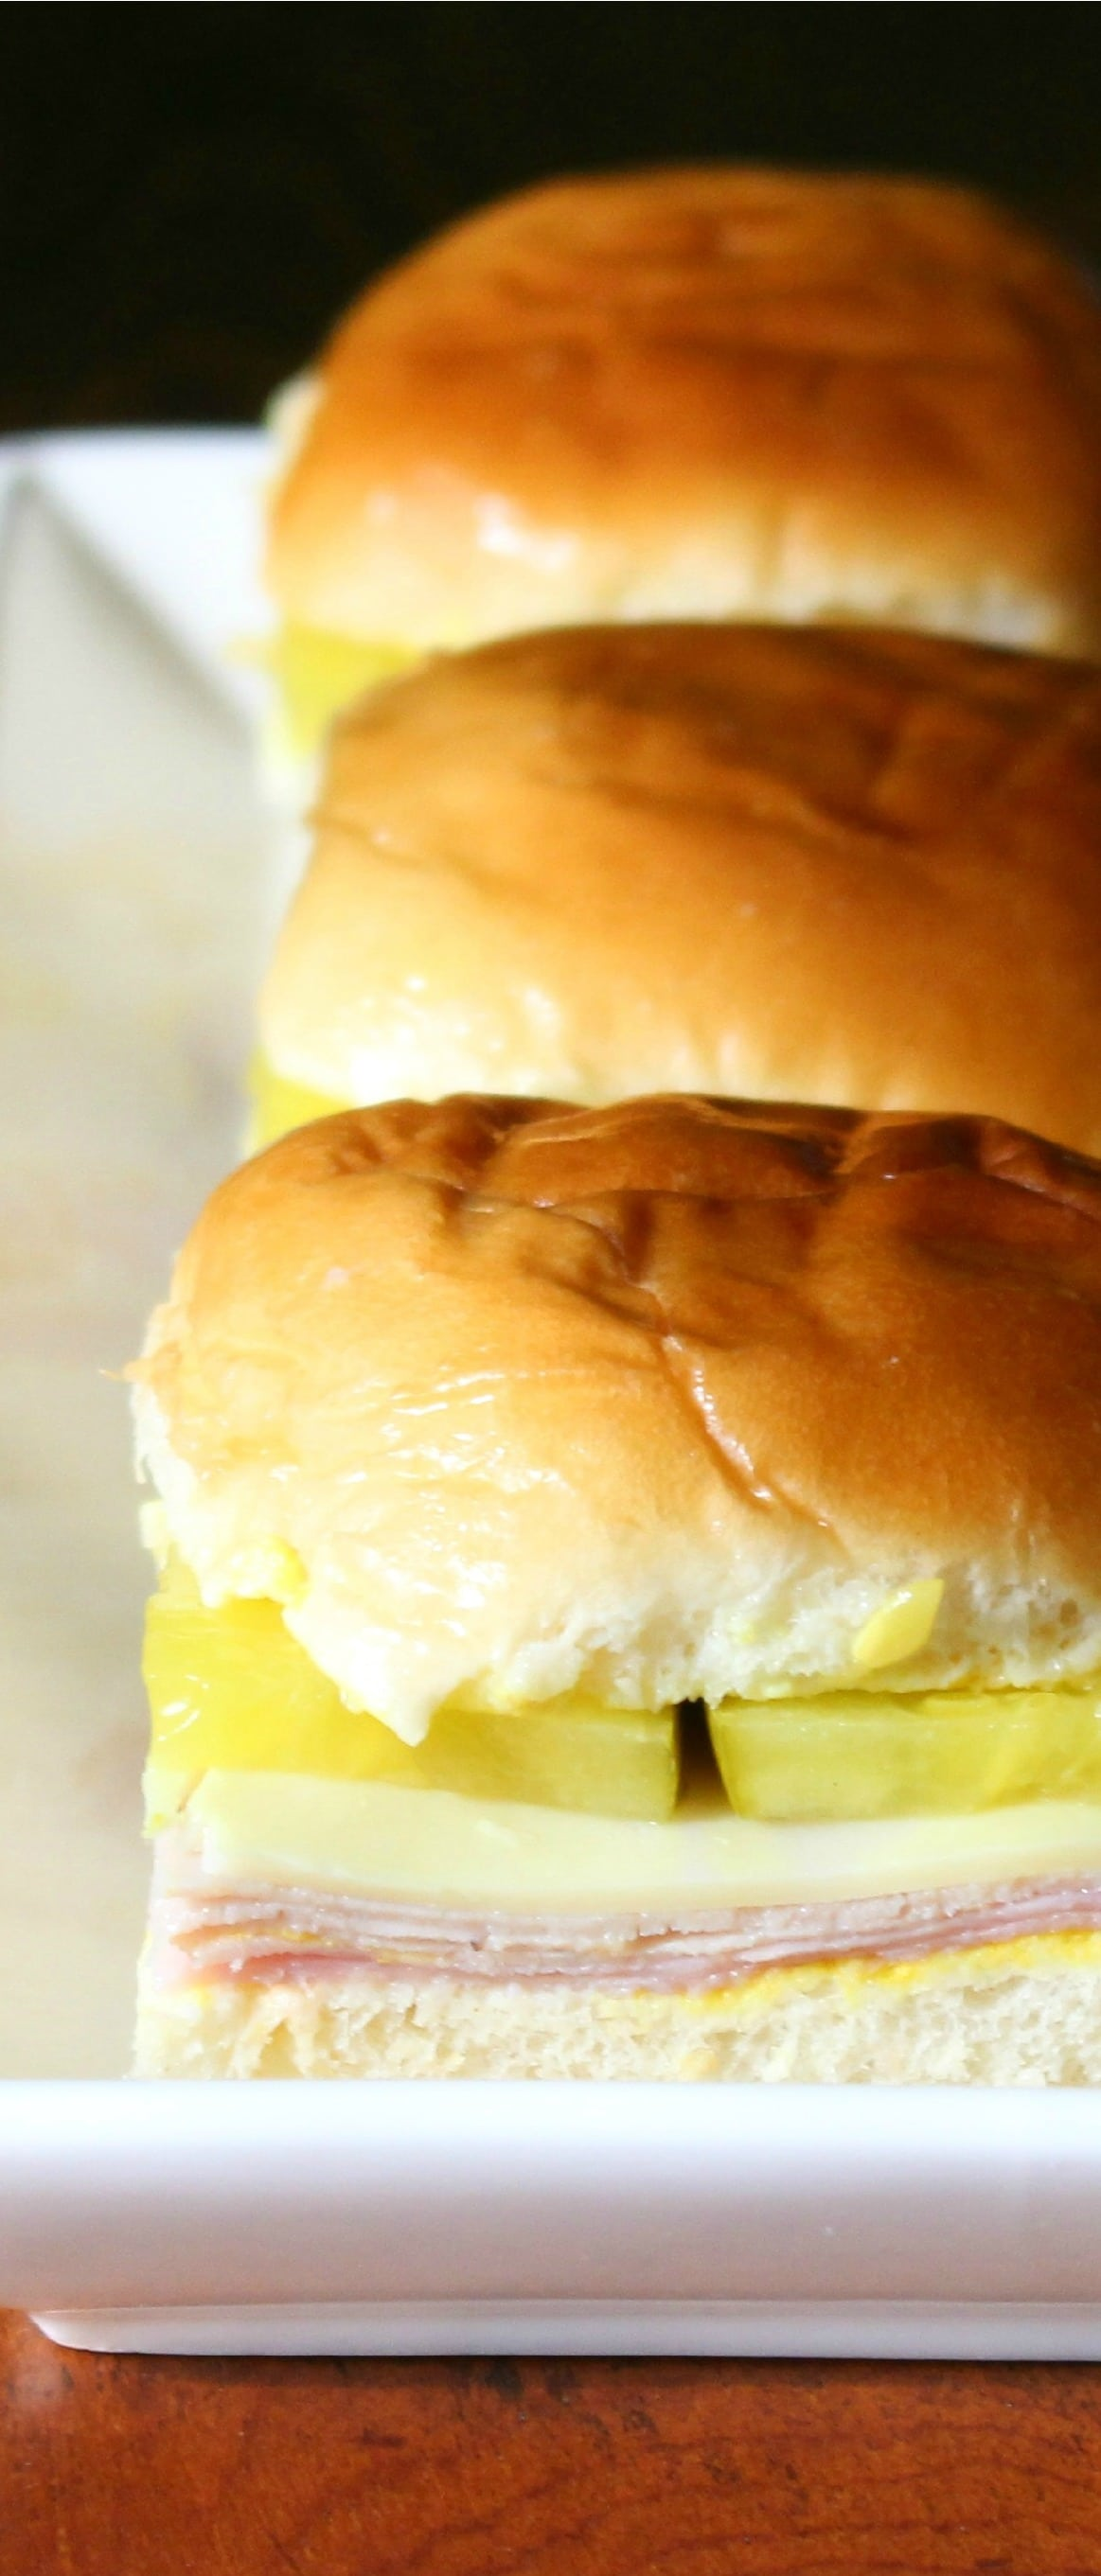 Easy Cuban sandwich sliders made with ham, pork, cheese, mustard, and pickles, on soft dinner rolls.  Bake them for dinner or for a party!